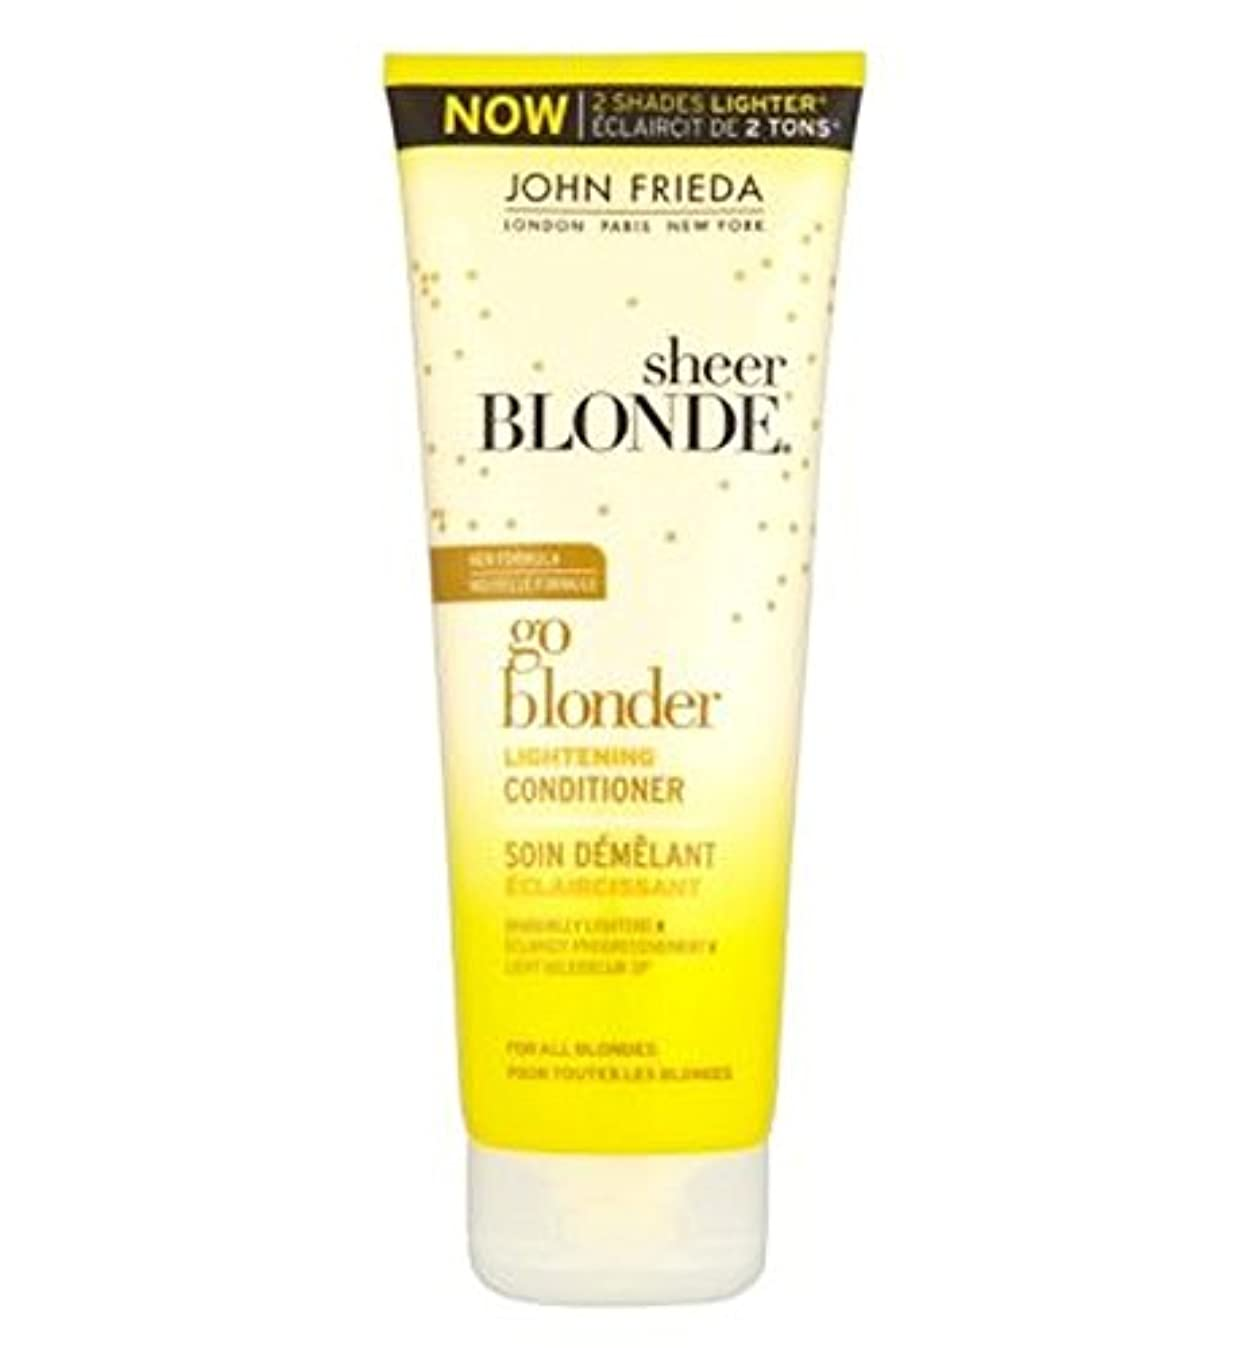 John Frieda Sheer Blonde Go Blonder Lightening Conditioner 250ml - ジョン?フリーダ薄手ブロンド行くBlonder美白コンディショナー250Ml (John...